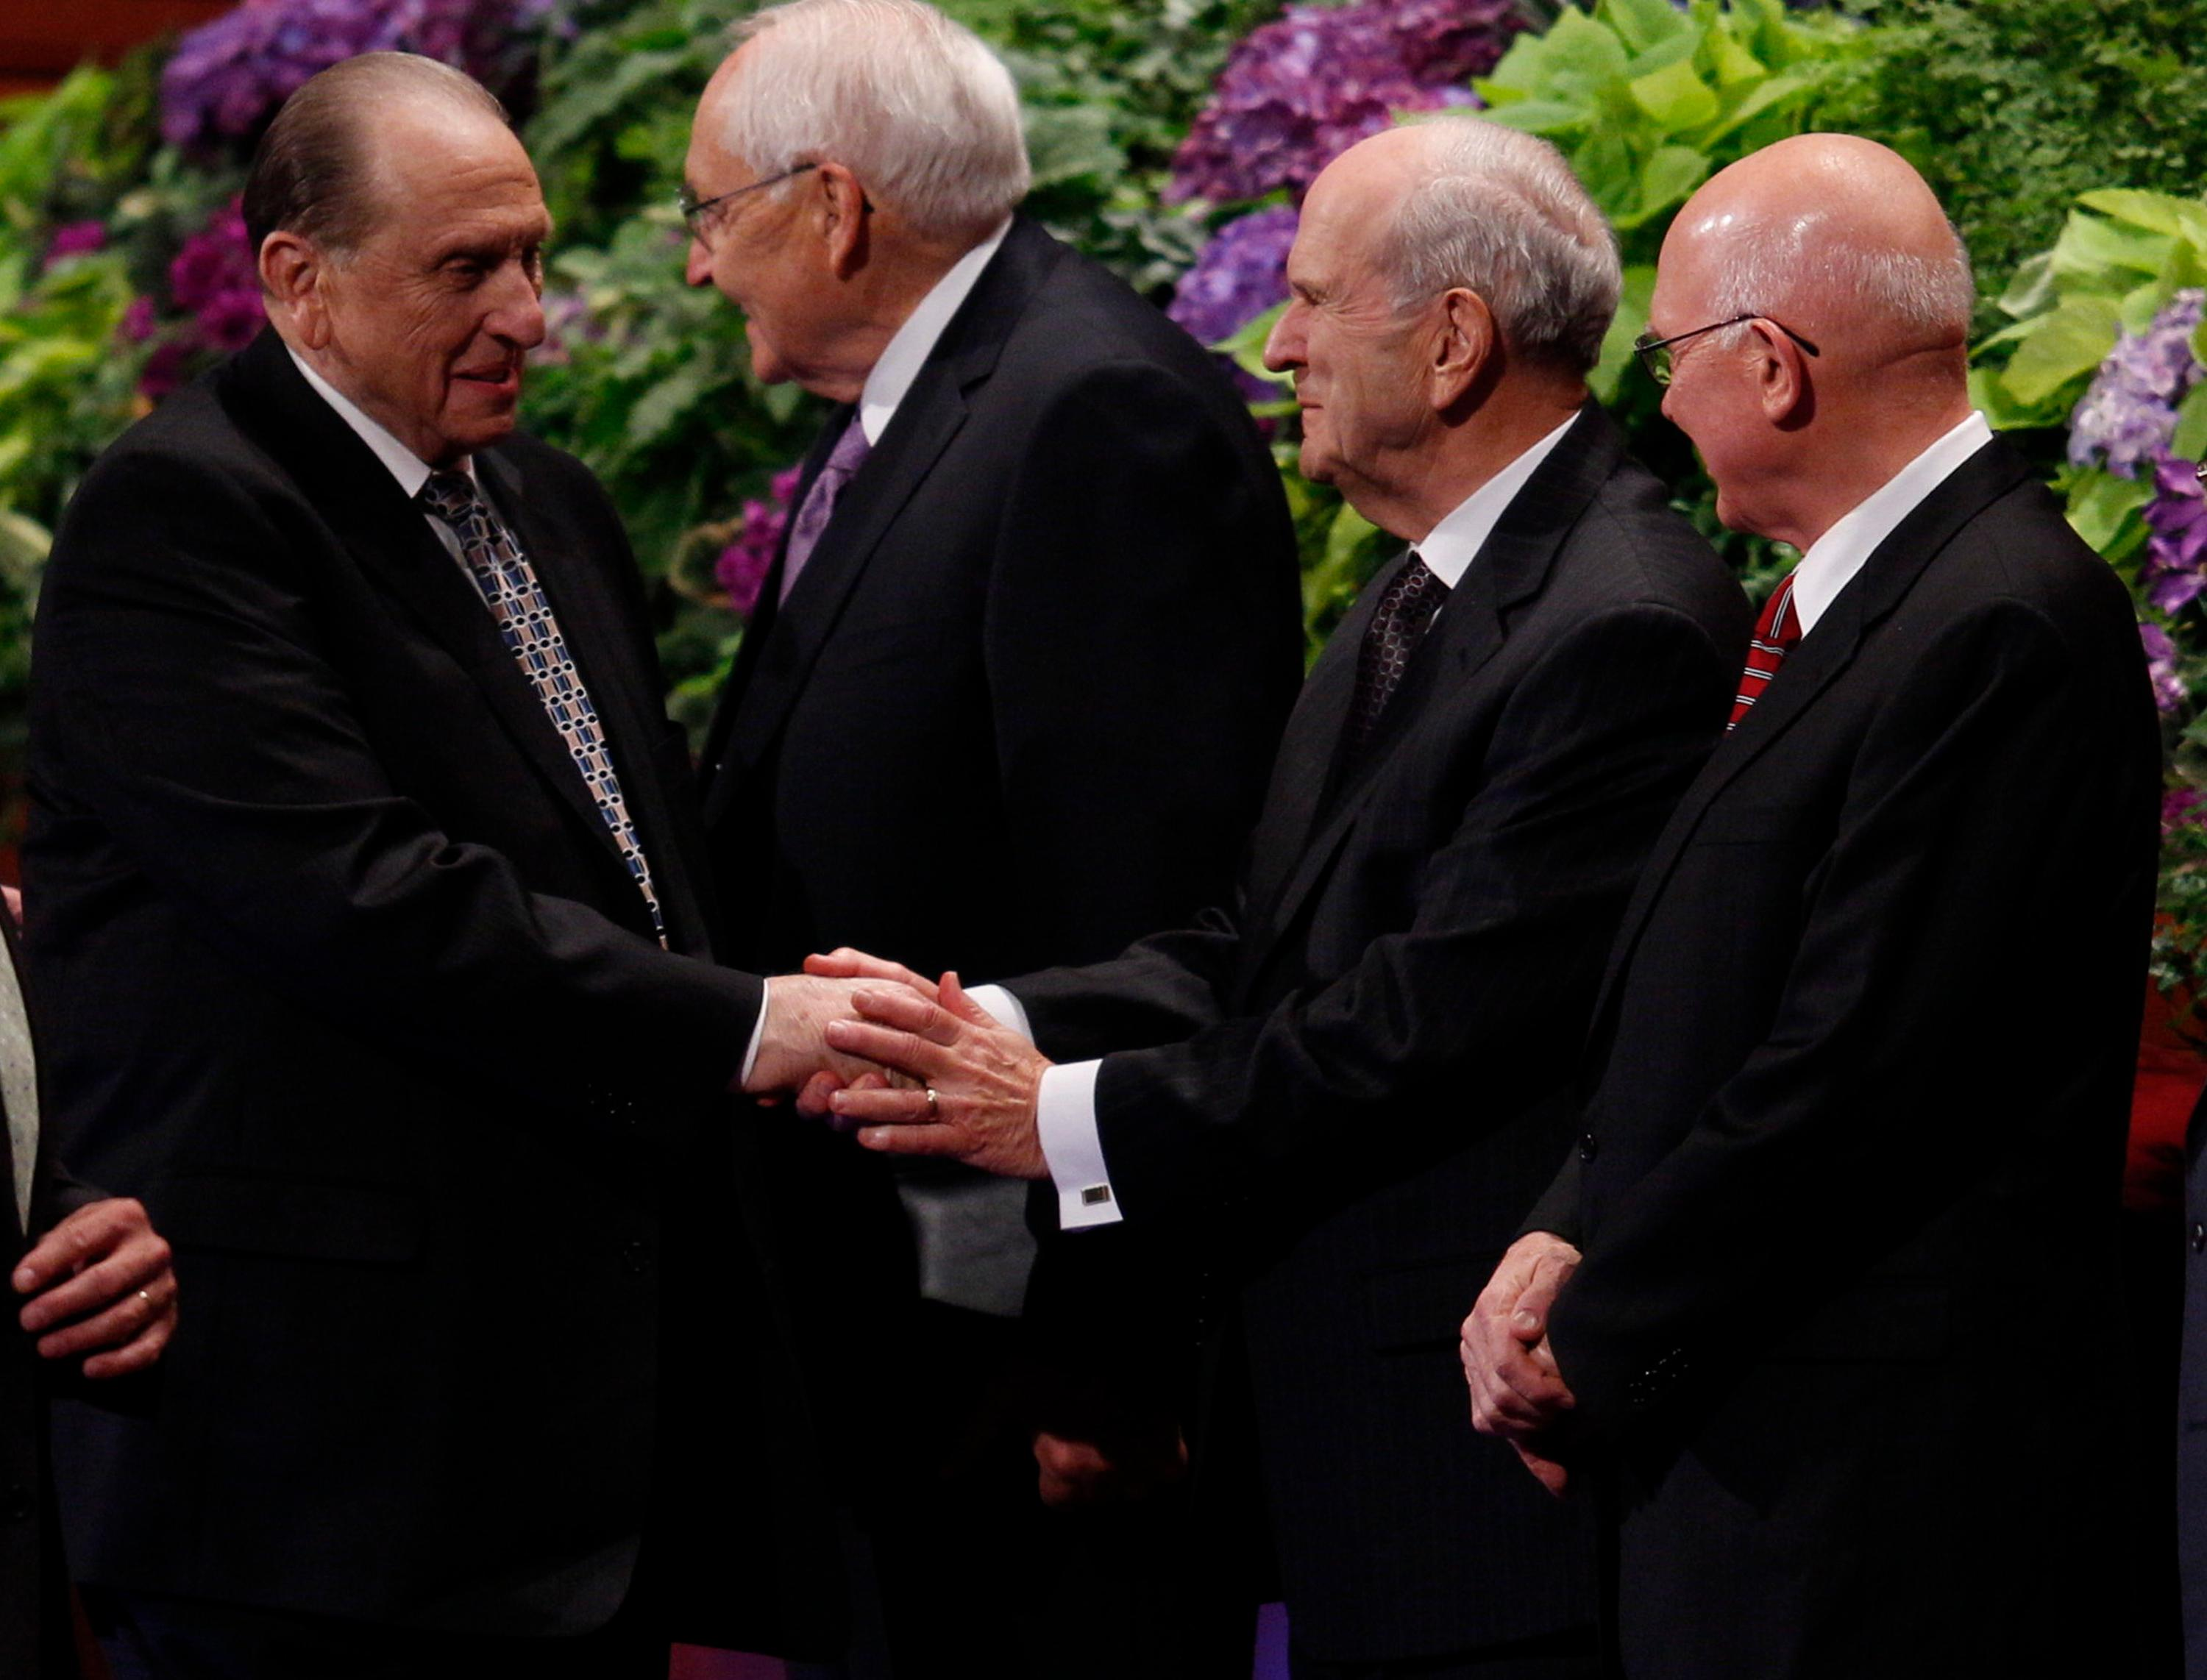 President Thomas S. Monson greets President Russell M. Nelson during the Sunday morning session of the Church's October 2013 general conference. (Photo: MormonNewsroom.org)<p></p>